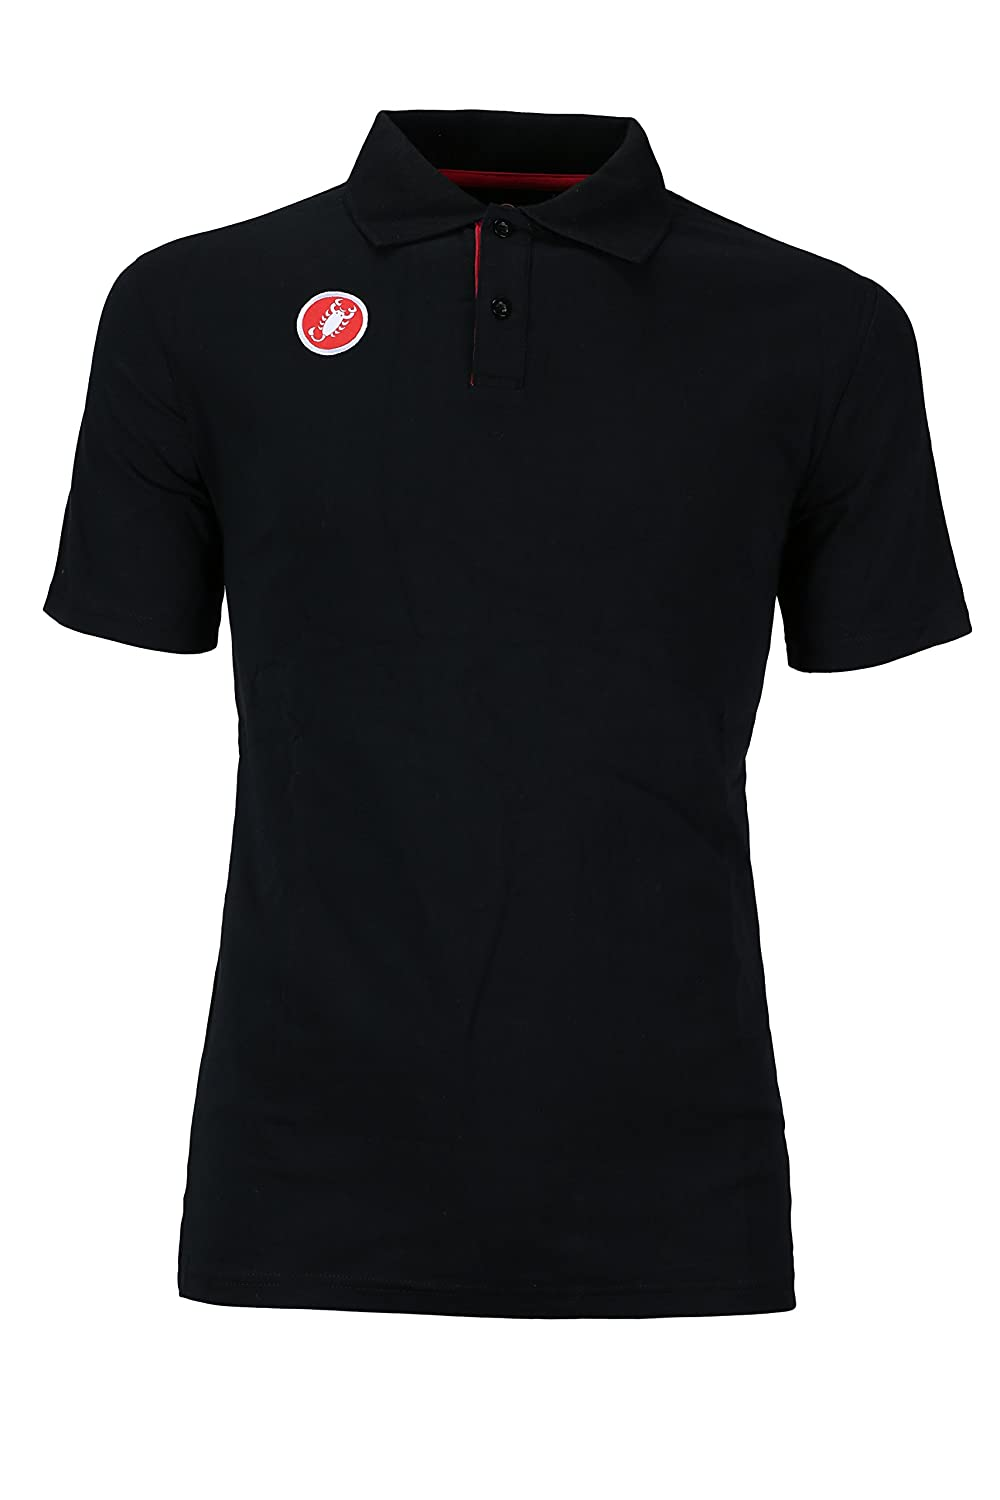 Castelli Race Day Polo Shirt – Men 's B00B16D0PY Small|ブラック ブラック Small